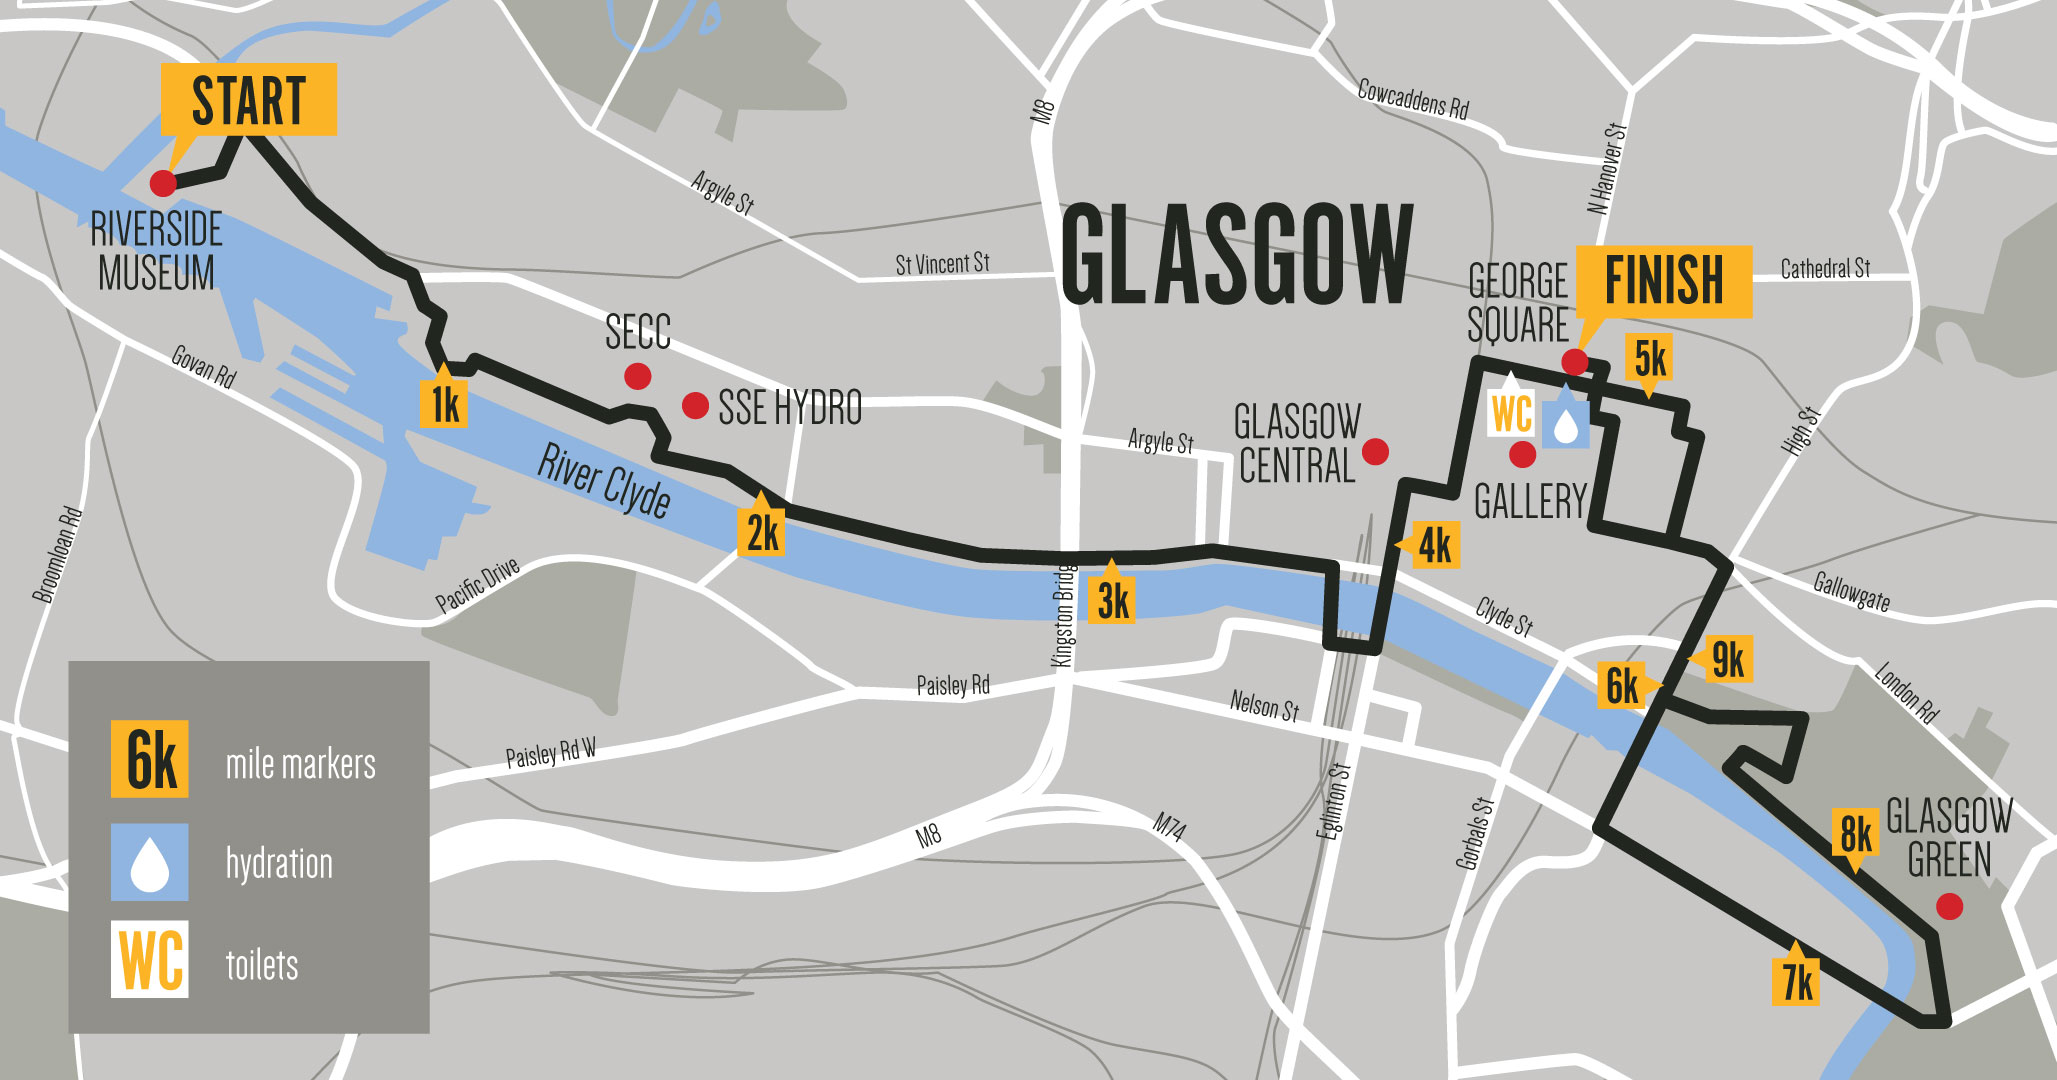 Men's 10k Glasgow route